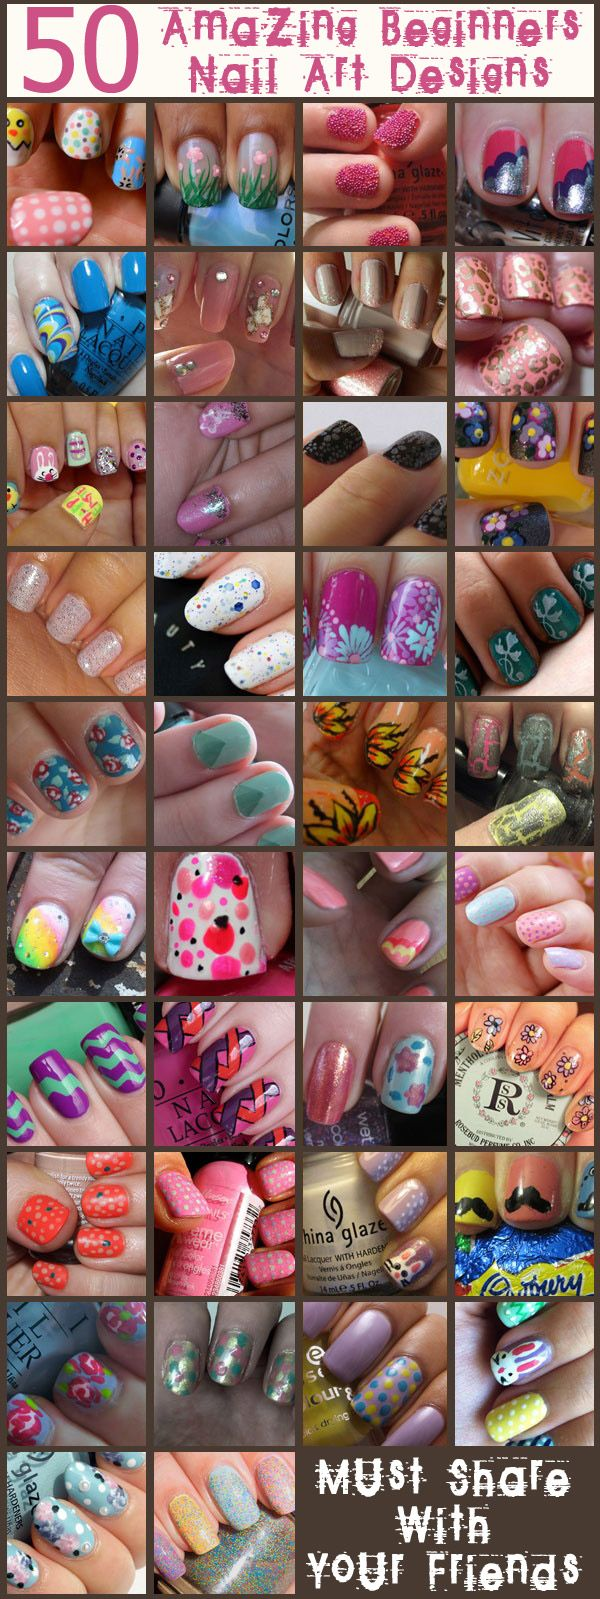 Nail Art Designs For Beginners: Go easy on yourself and start with these nail art designs for beginners. So all set to get started? Please visit our website @ http://rainbowloomsale.com